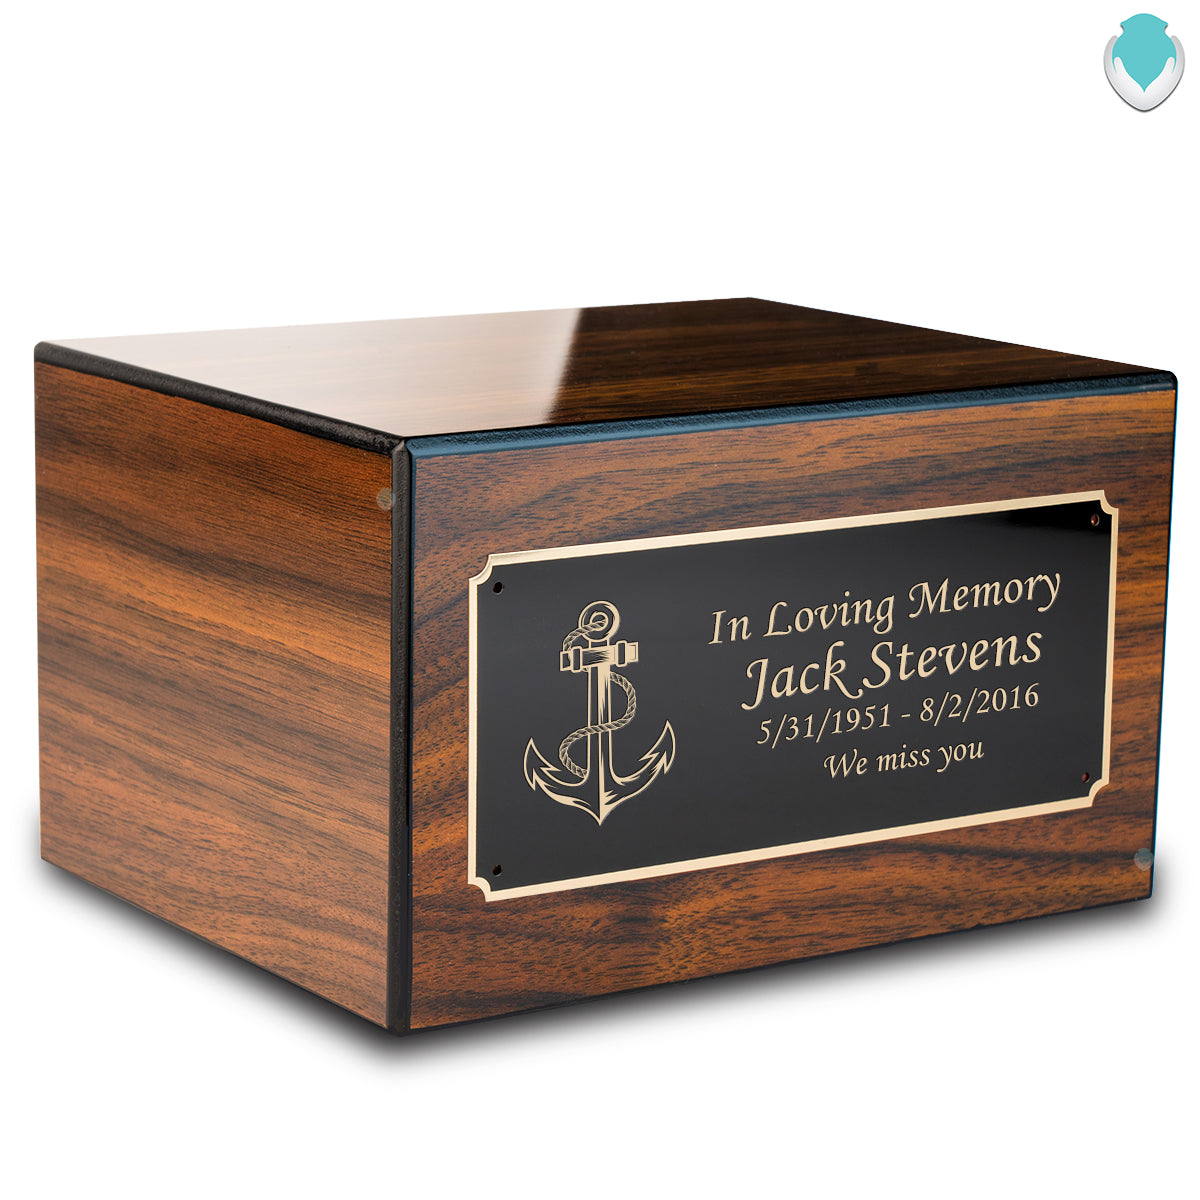 Custom Engraved Heritage Walnut Adult Cremation Urn Memorial Box for Ashes